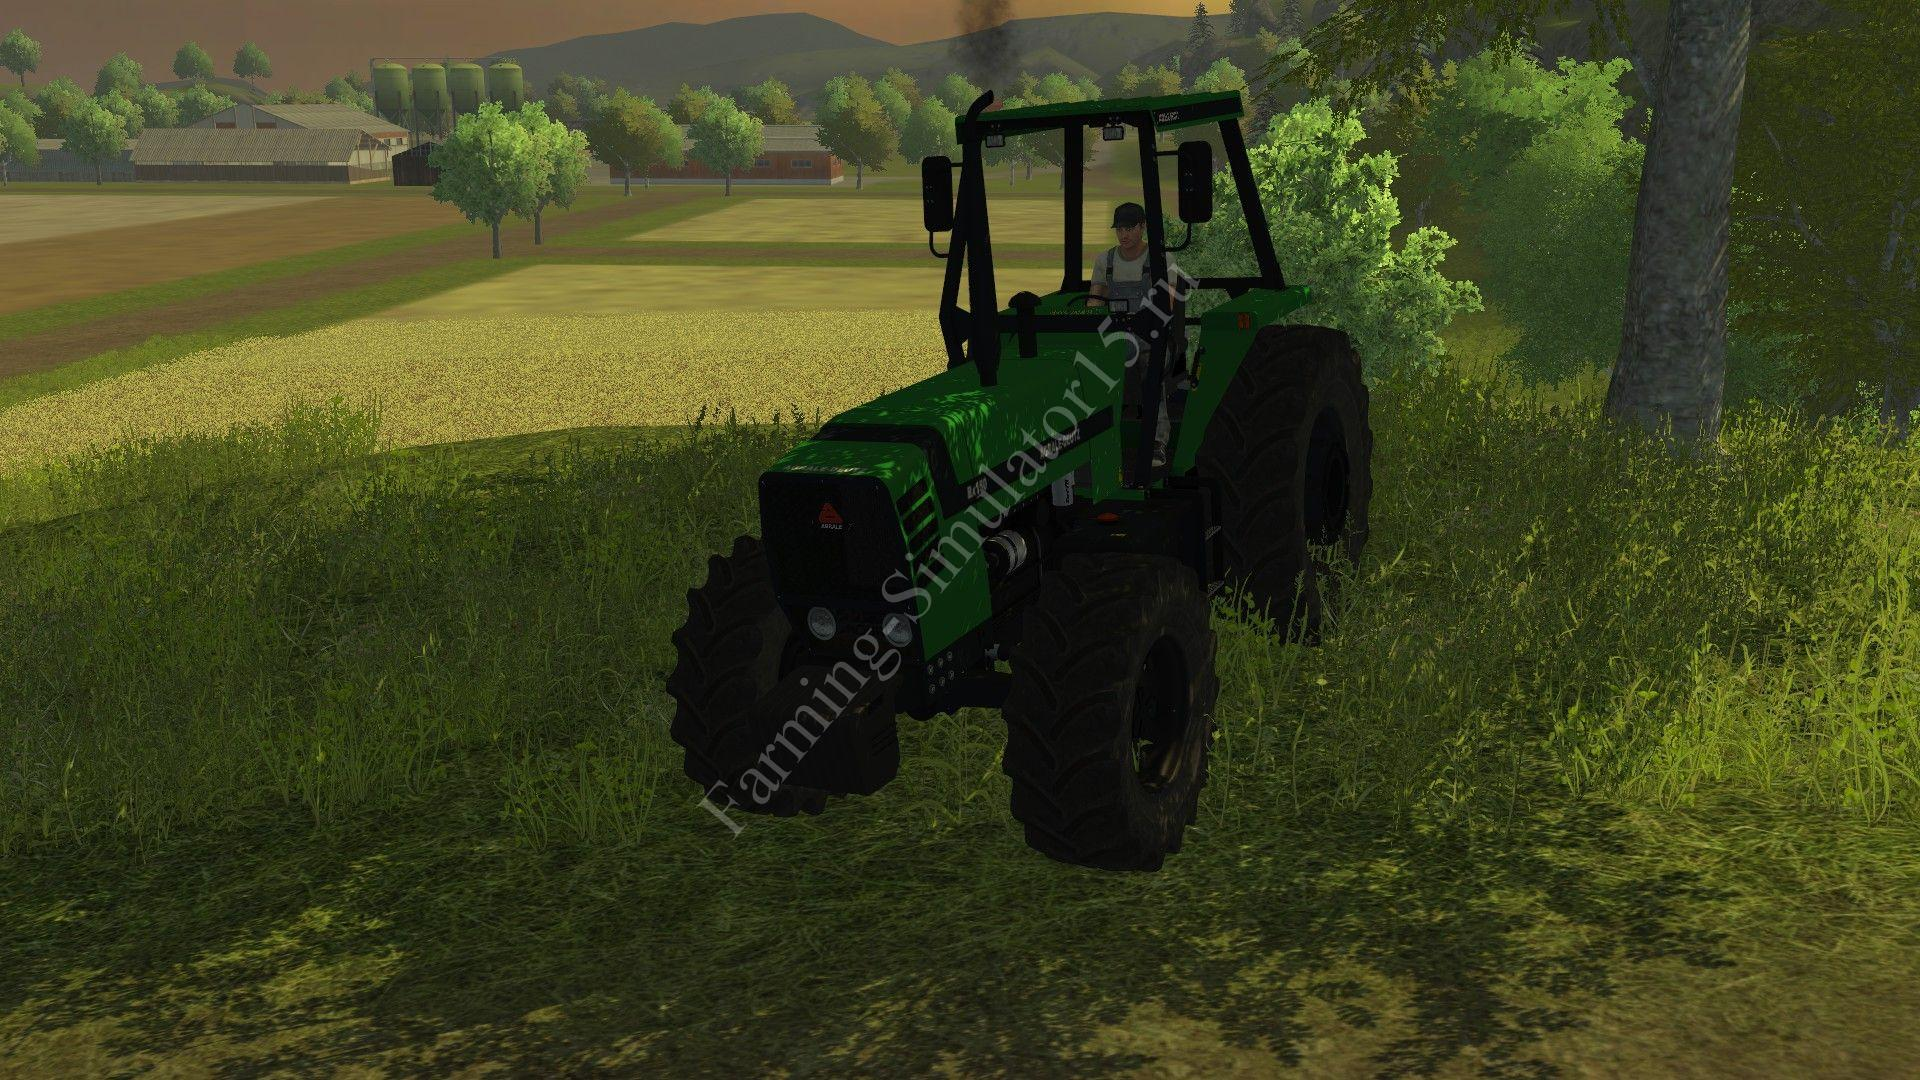 Мод трактора DEUTZ Agrale BX 4150 v 1.0 Farming Simulator 2013, Farming Simulator 13